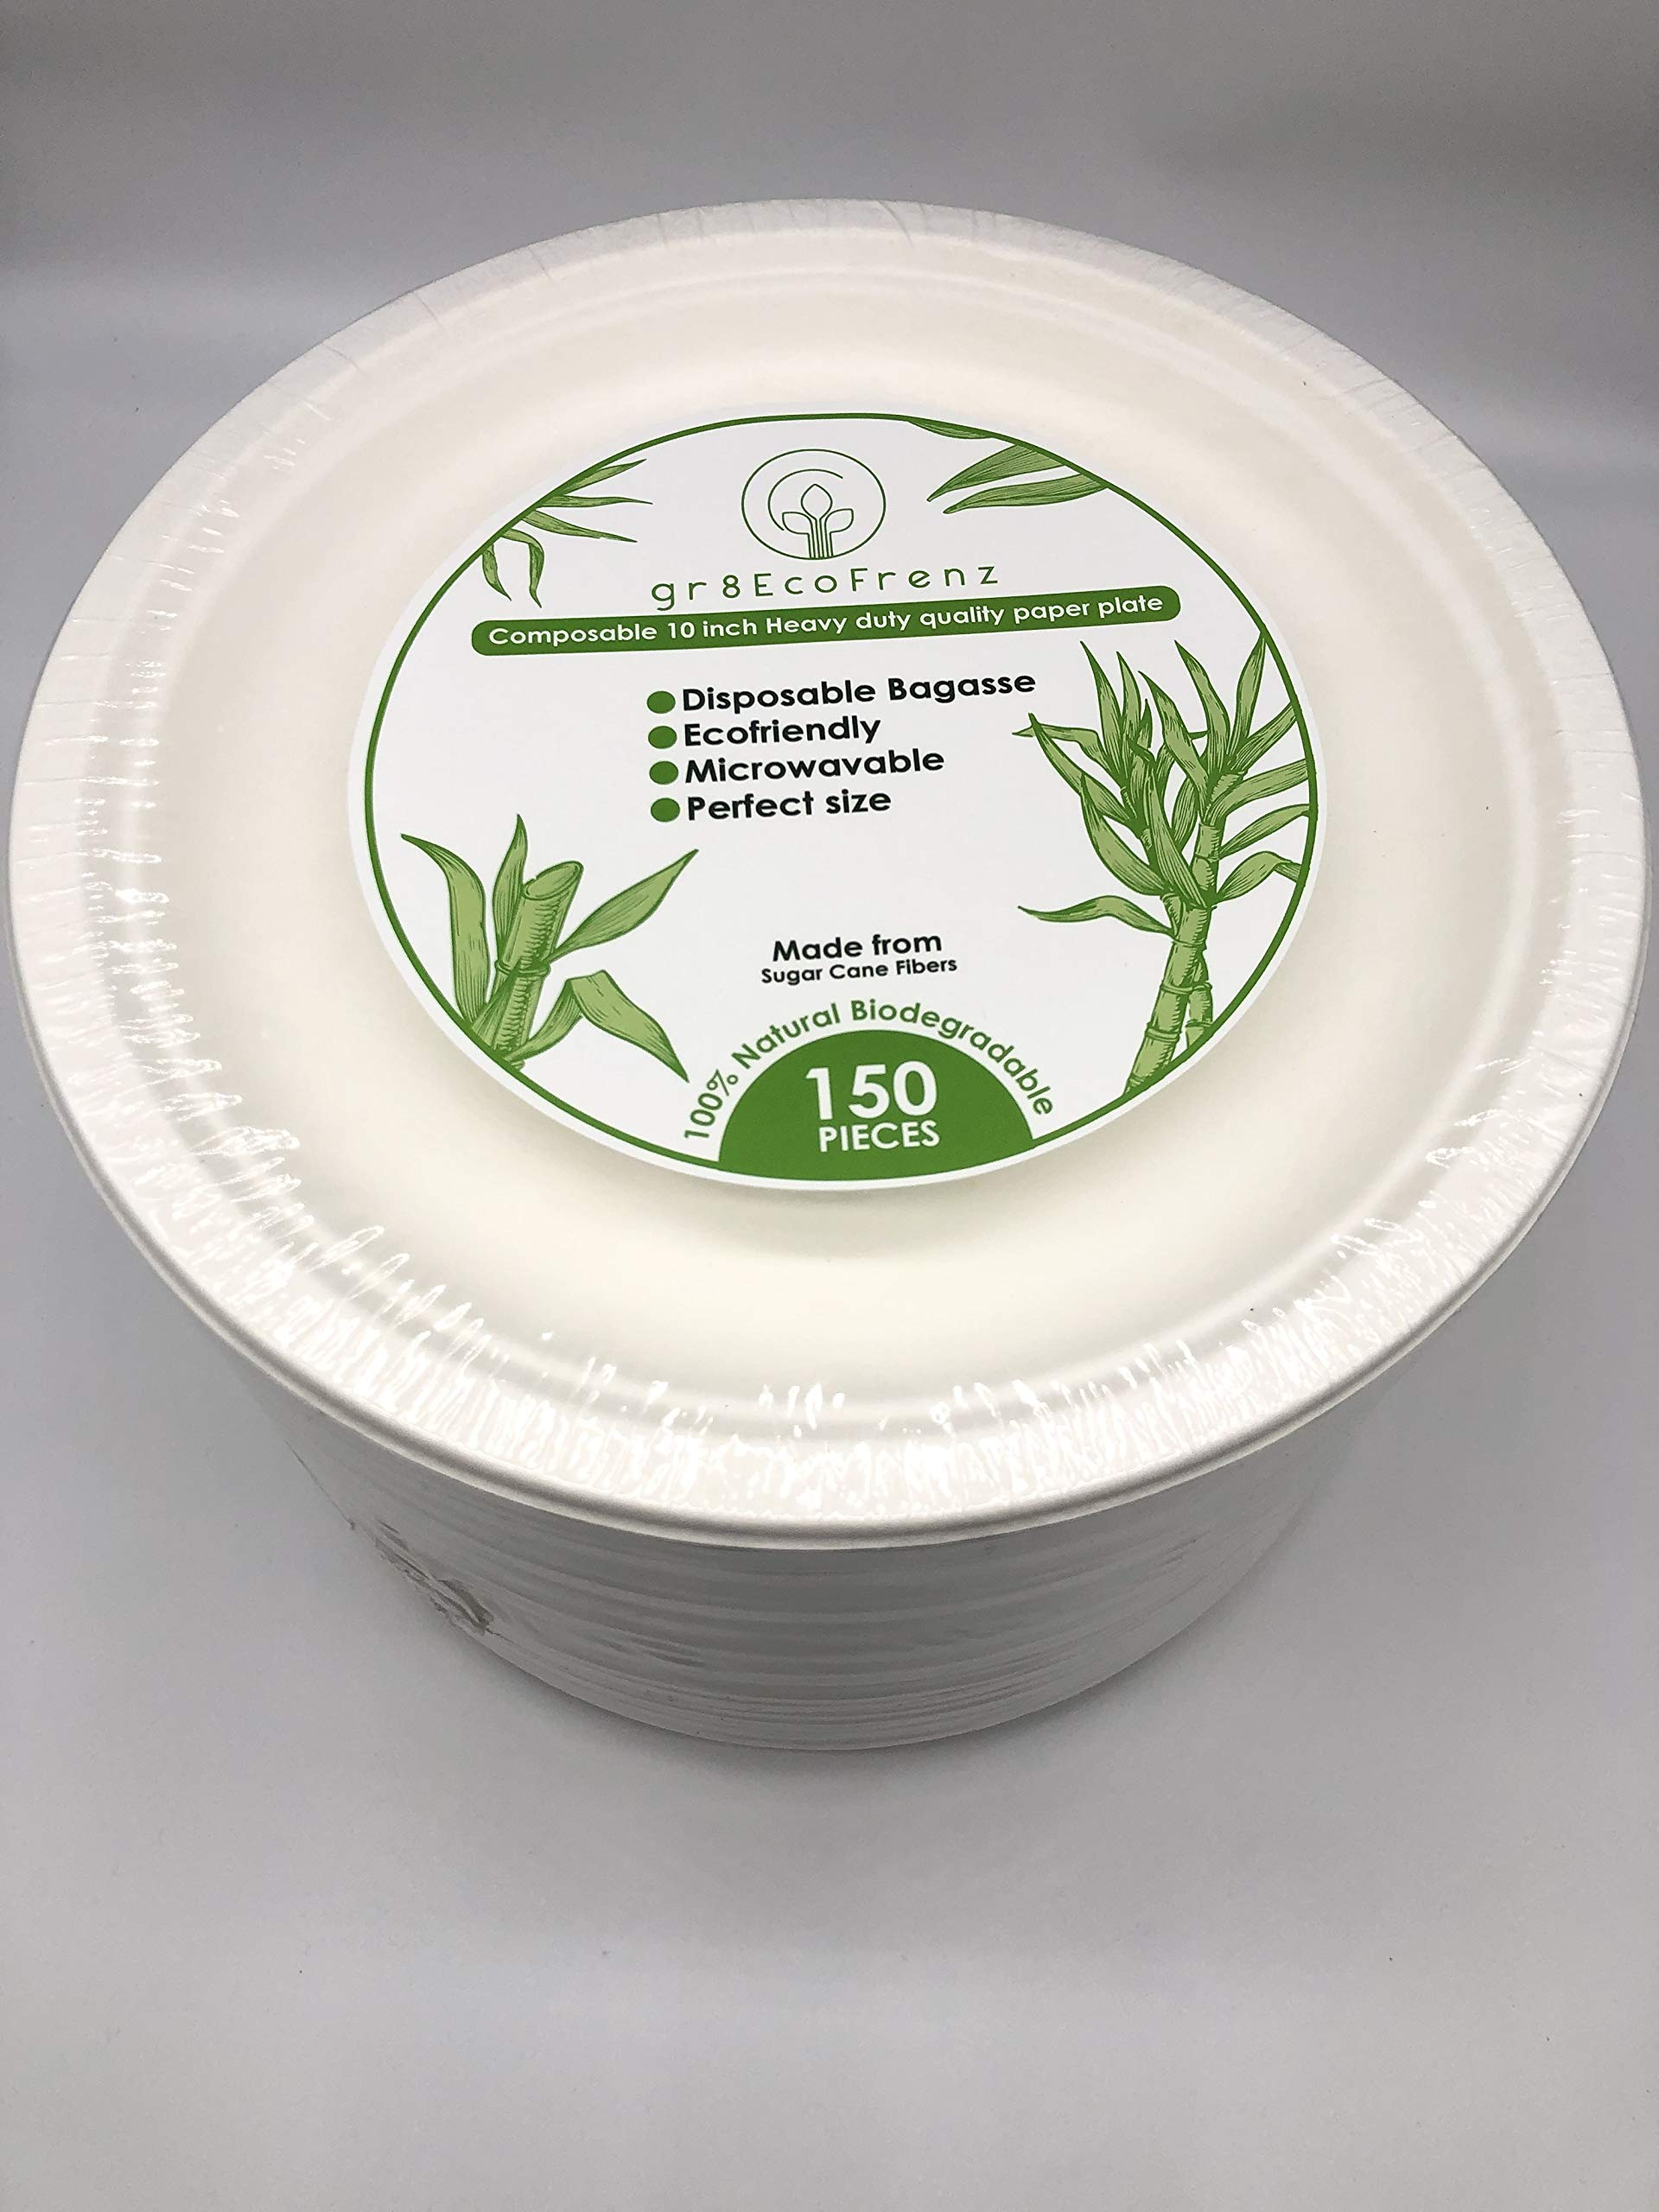 150 pcs Restaurant Grade, 10inch Heavy-Duty Quality,Natural Biodegradable, Disposable Bagasse, Eco-Friendly Made of Sugar Cane Fibers, Gluten free, Microwavable and Safe for Hot and Cold Foods by gr8Ecofrenz